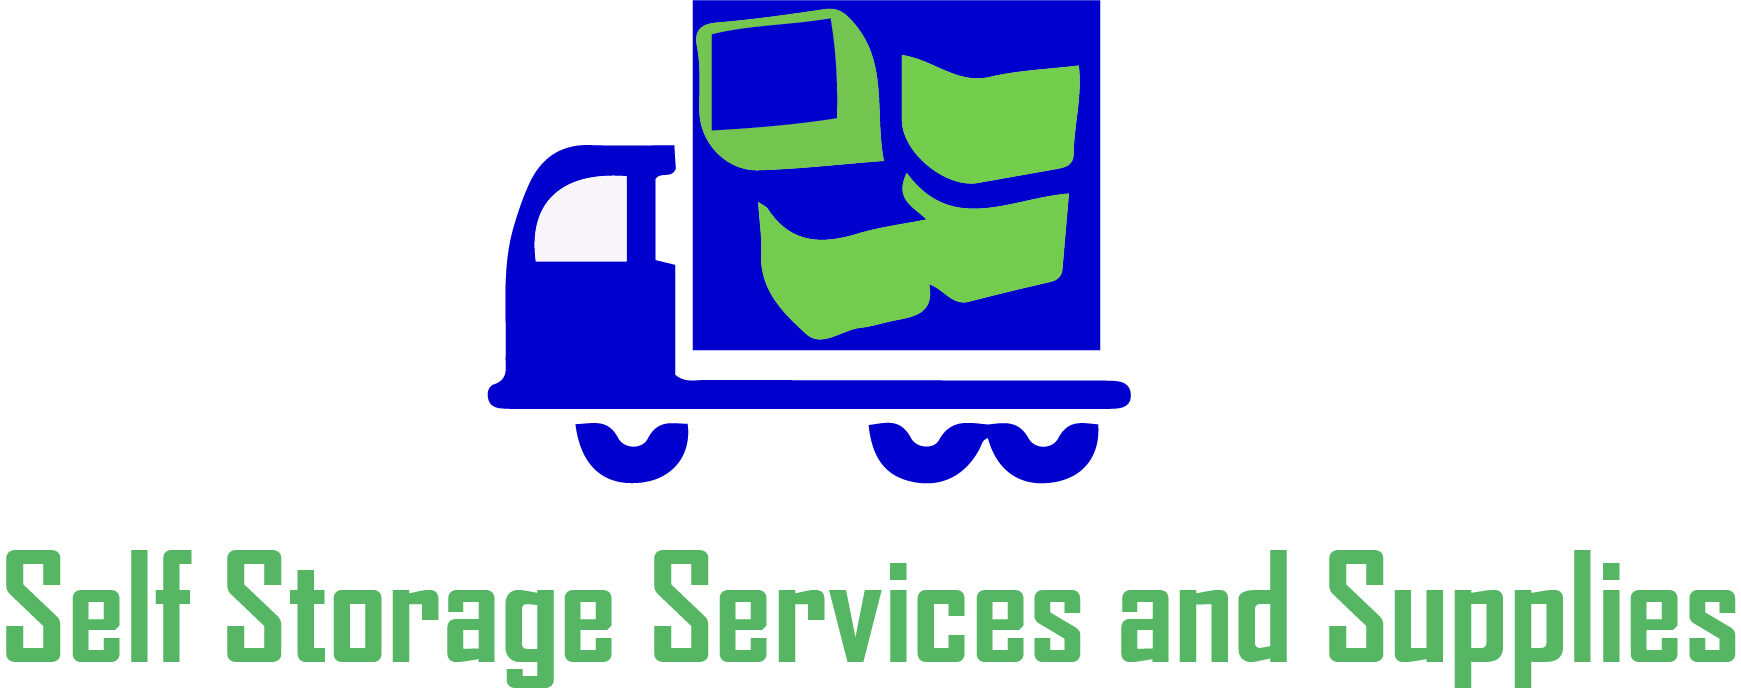 Self Storage Services and Supplies